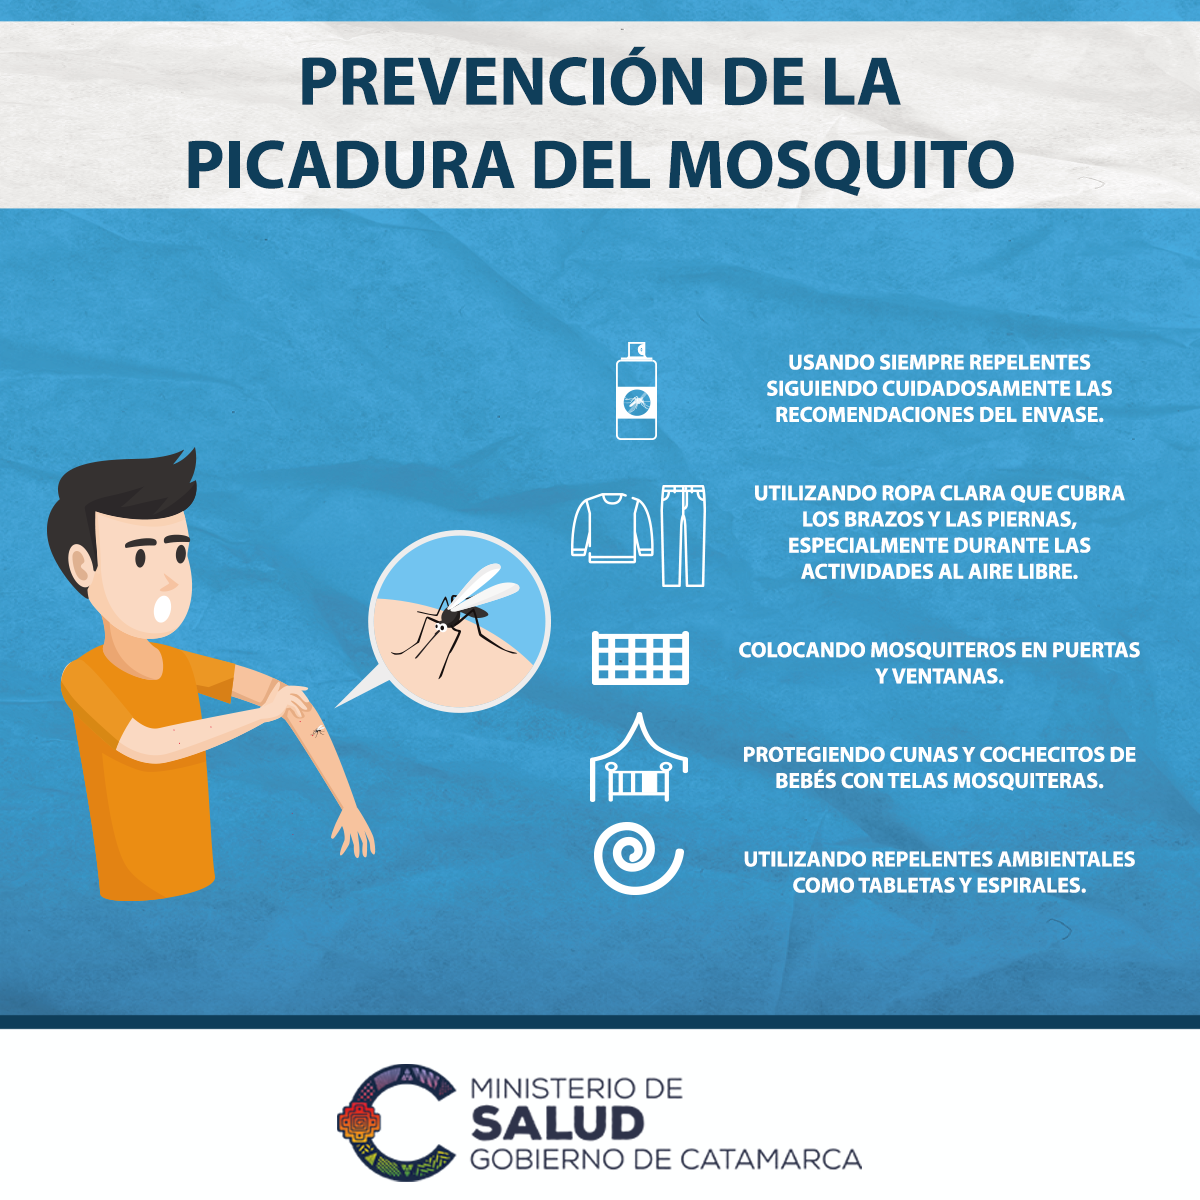 Prevencion de picaduras -Dengue